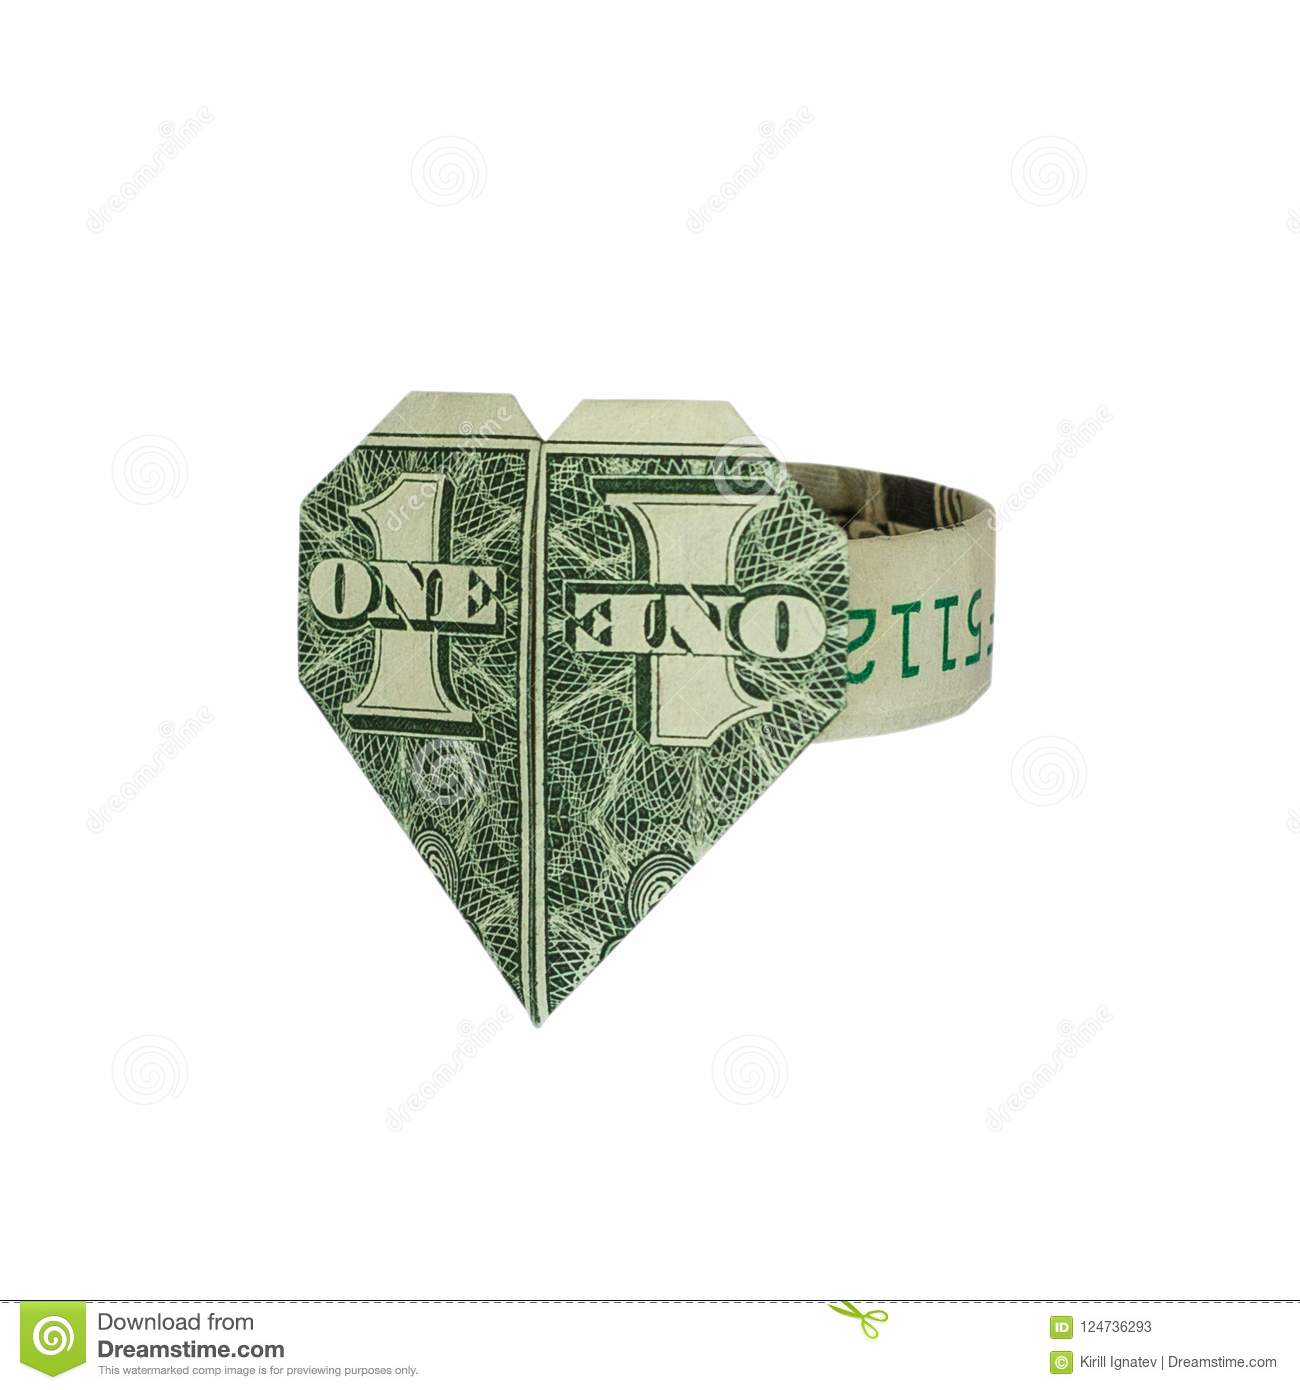 Origami Heart Ring Folded Real One Dollar Bill Stock Image Image